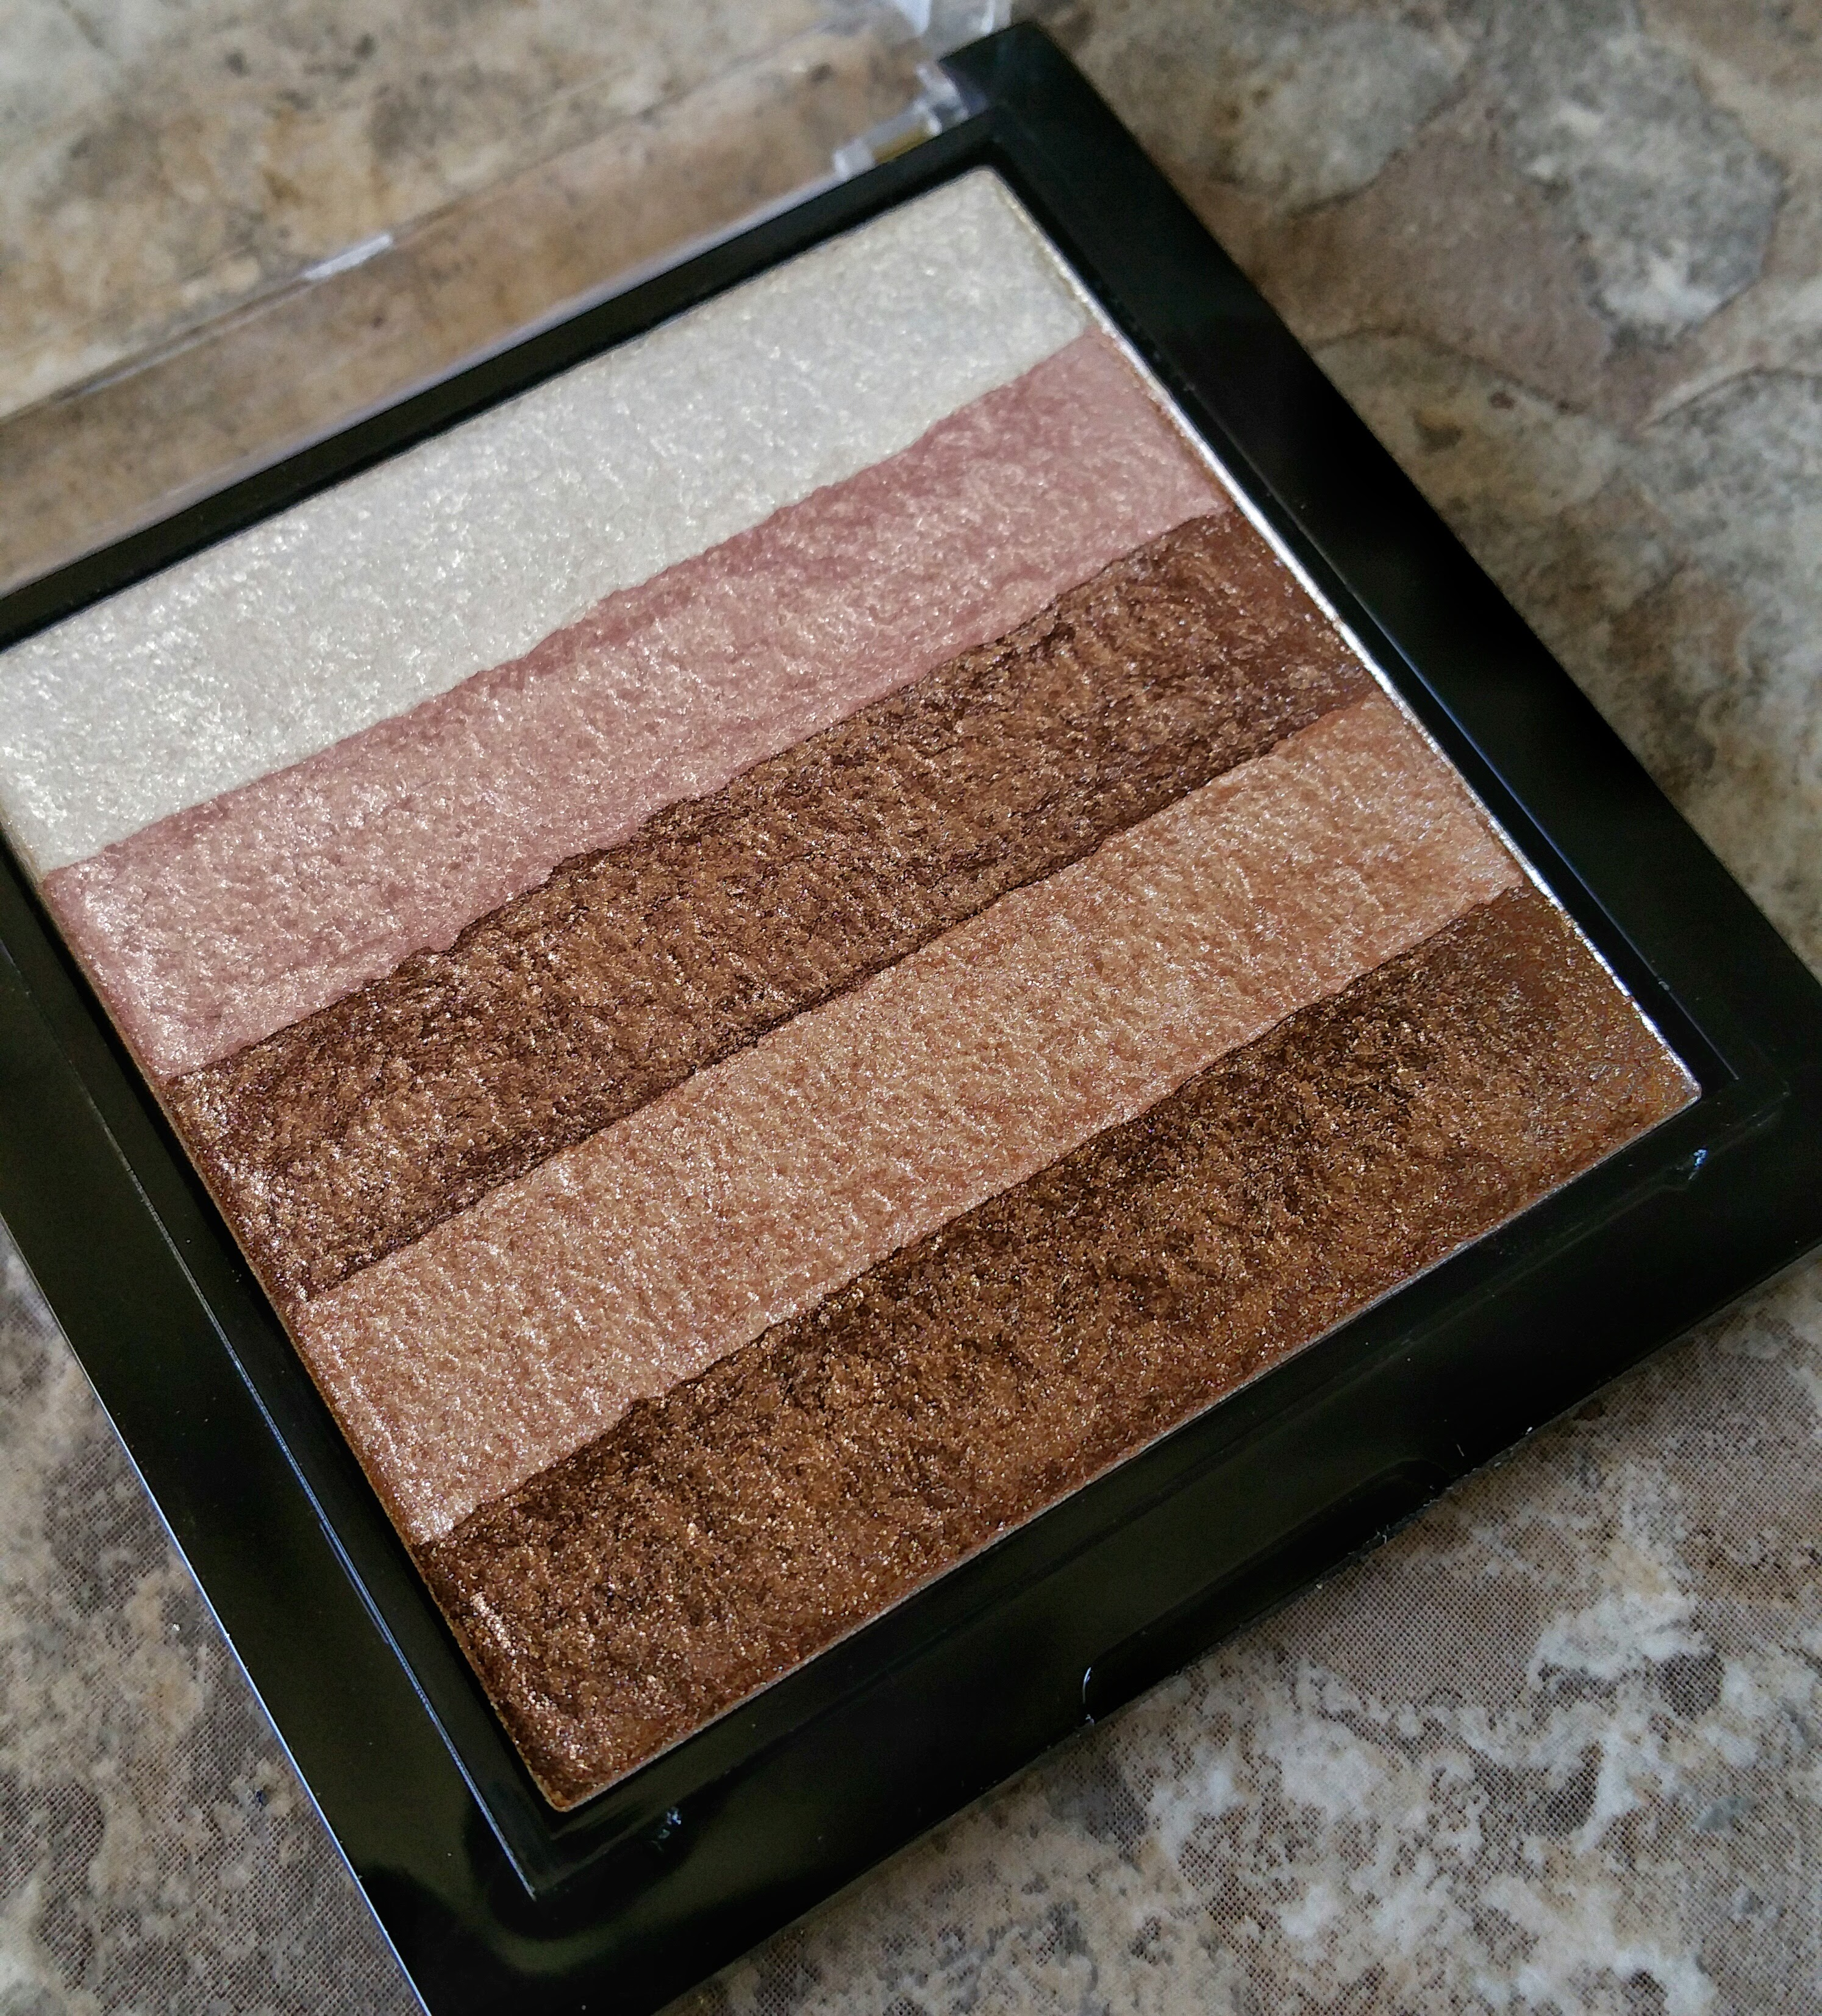 Ulta, Makeup Revolution, Vivid Shimmer Brick Radiant, Highlight, highlighter, on fleek, affordable highlighter, highend dupe, hourglass dupe, mary luminizer dupe, golden highlight, bronze, bronze highlight, makeup, beauty, swatches, product review,